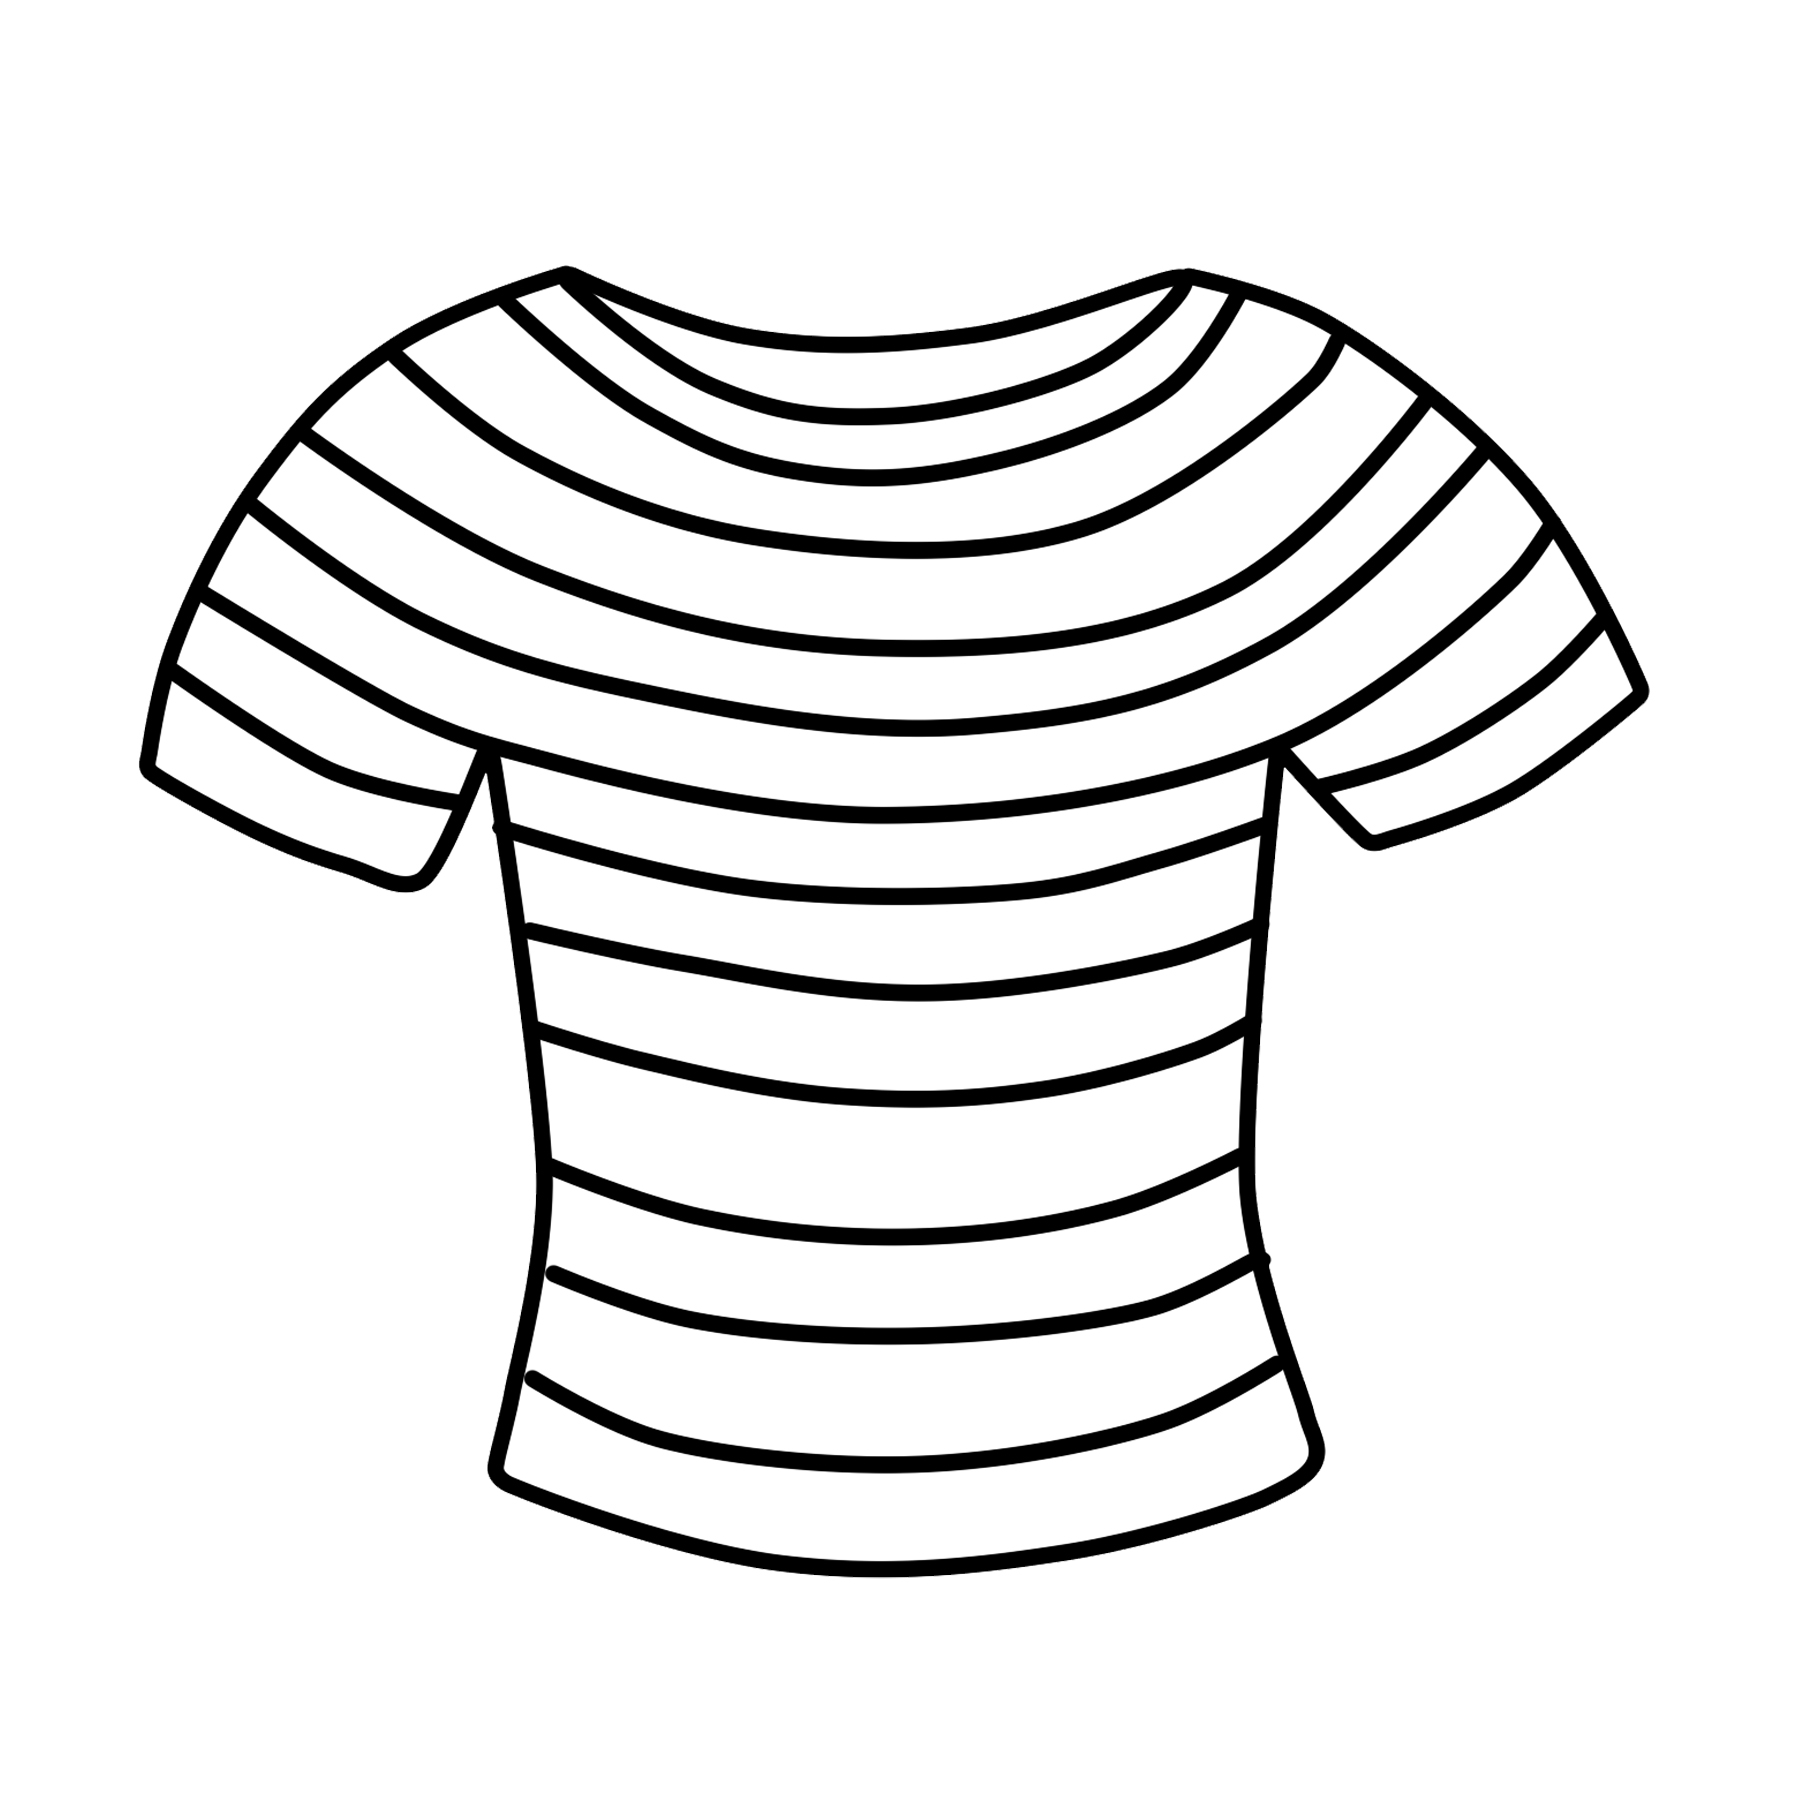 Clothes clipart striped shirt. T free clip art